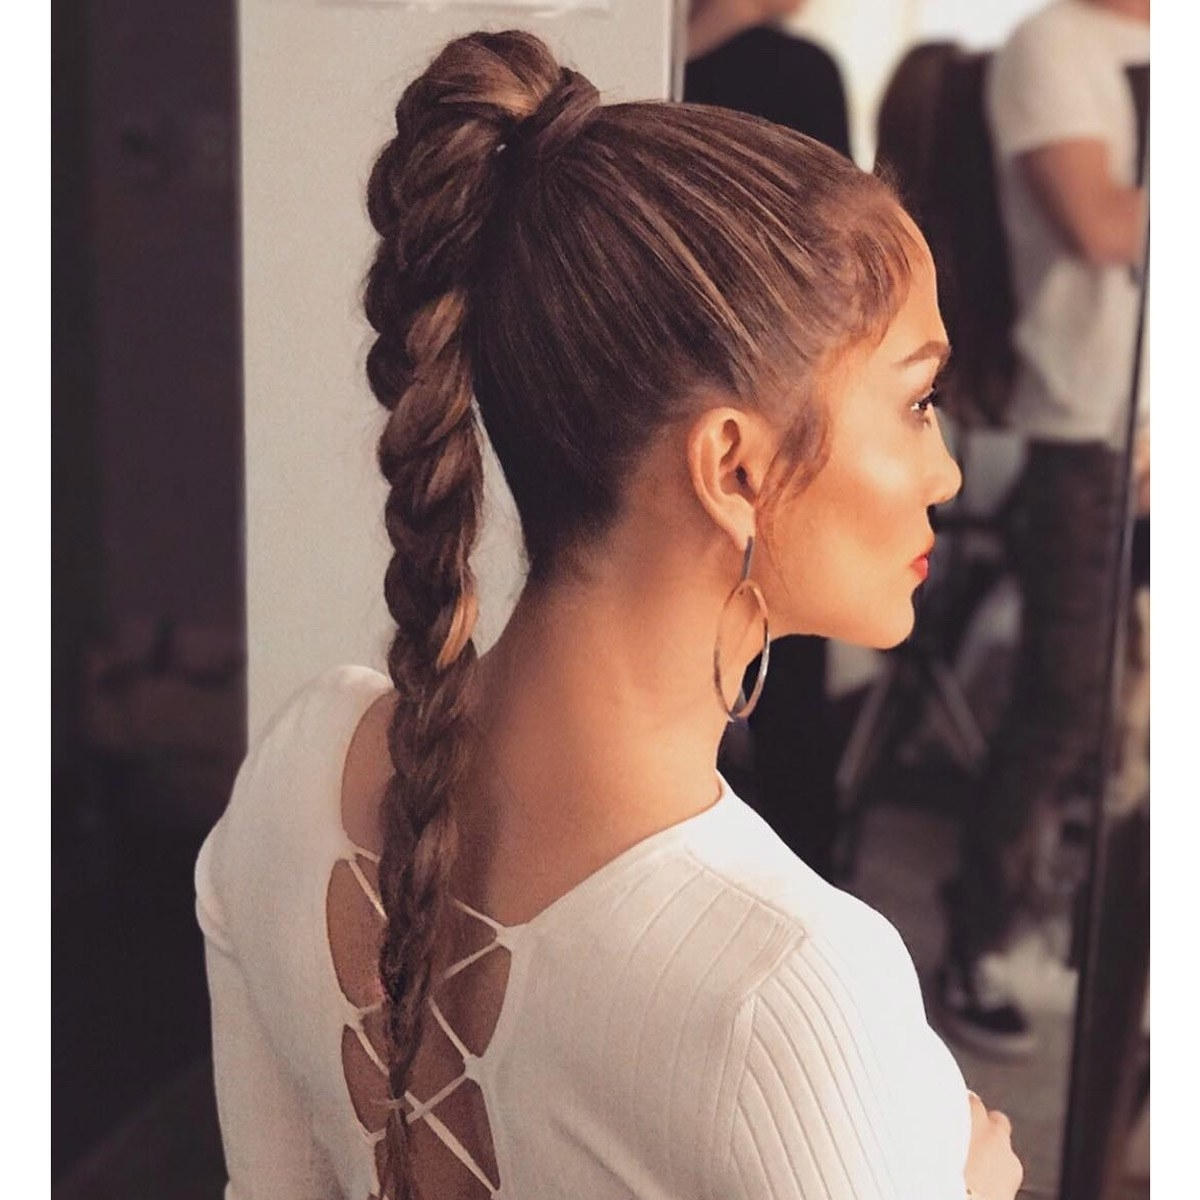 Most Up To Date Straight High Ponytail Hairstyles With A Twist Intended For 27 Ponytail Hairstyles For 2018: Best Ponytail Styles (View 11 of 20)